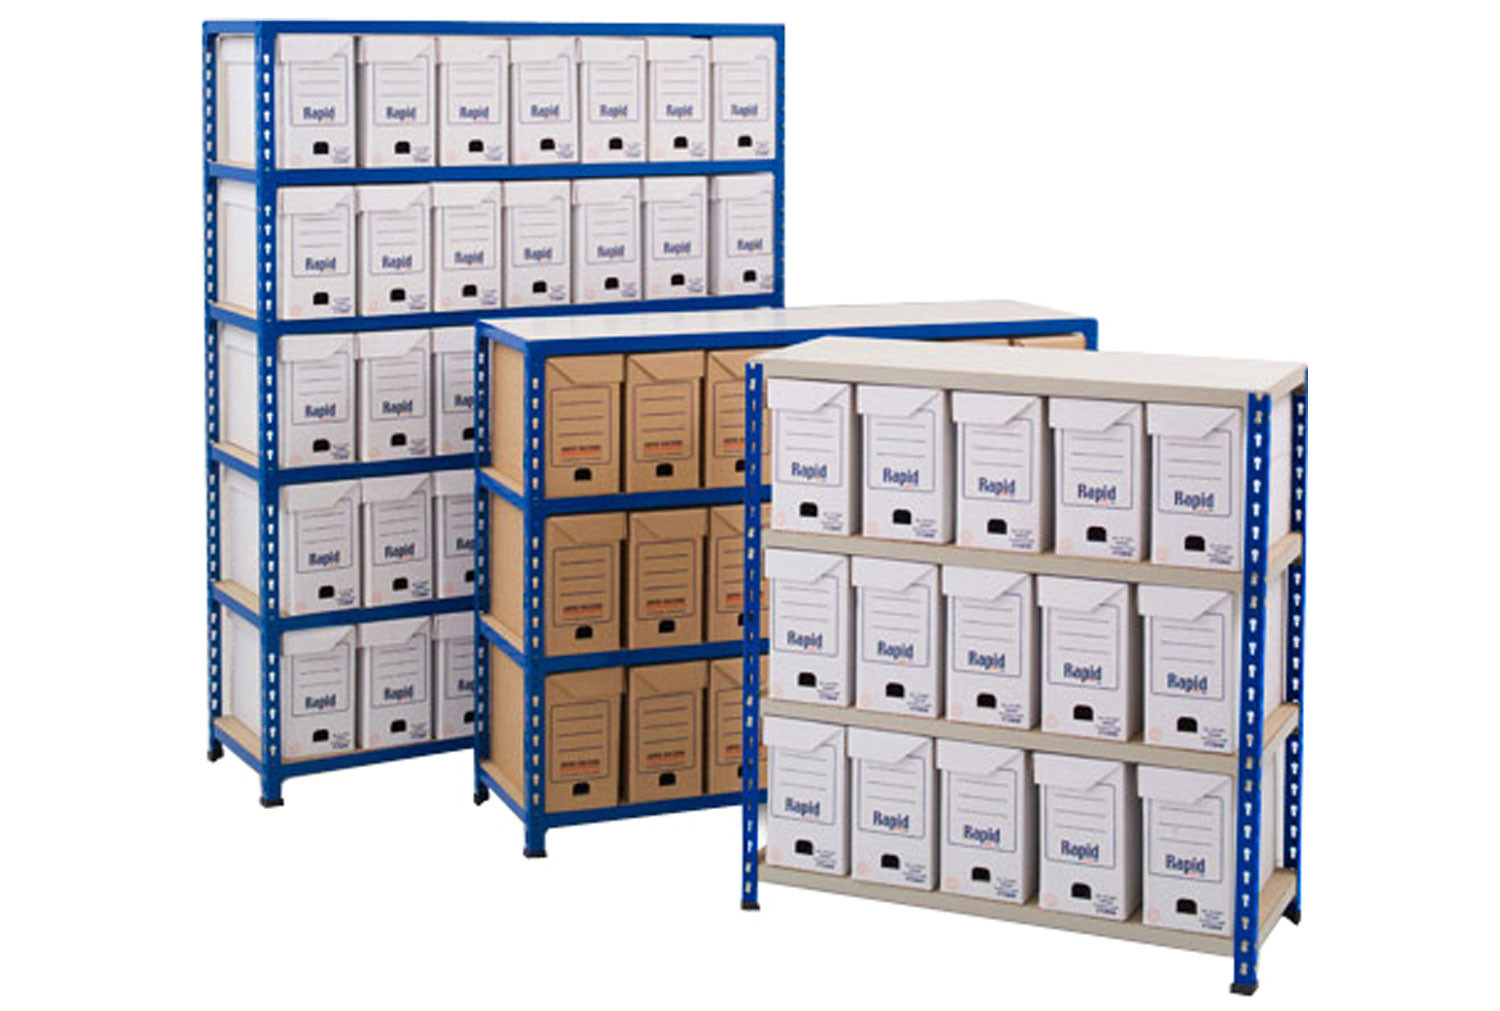 Rapid 2 flip top document storage bay with 25 boxes